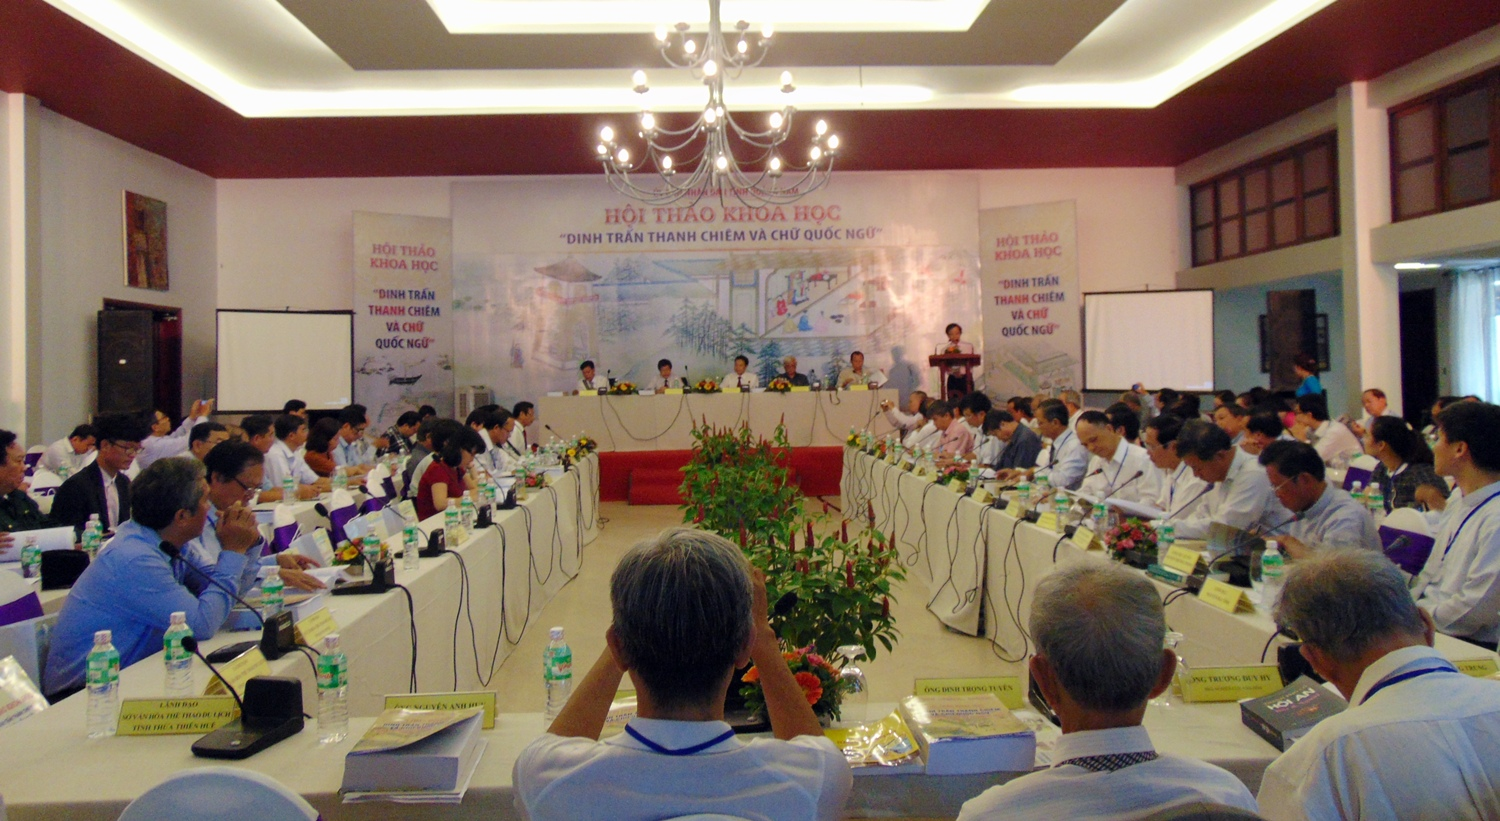 Workshop on Thanh Chiem Bastion and  Vietnamese official language